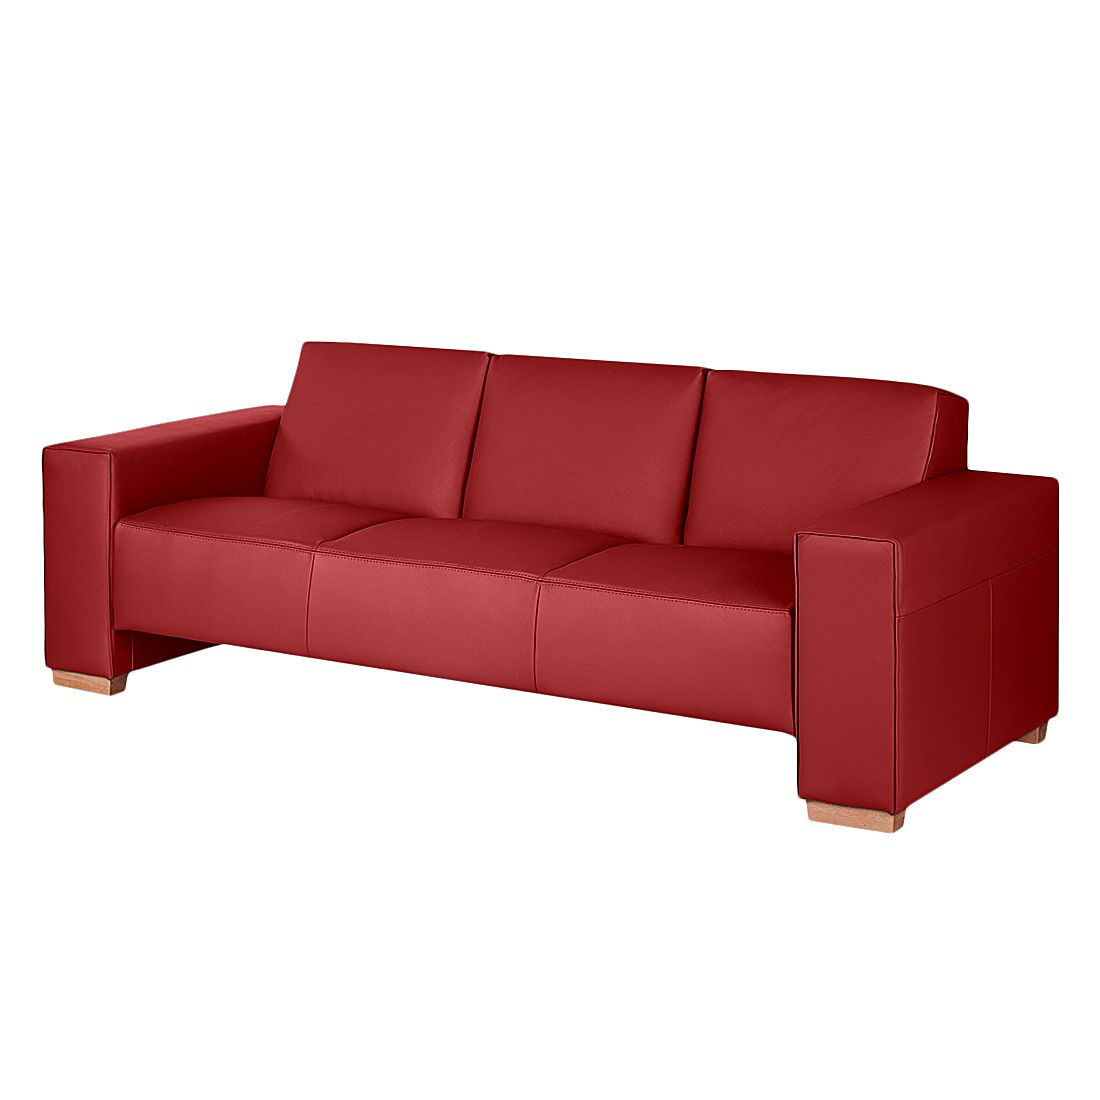 sofa midar 3 sitzer echtleder rot roomscape g nstig online kaufen. Black Bedroom Furniture Sets. Home Design Ideas